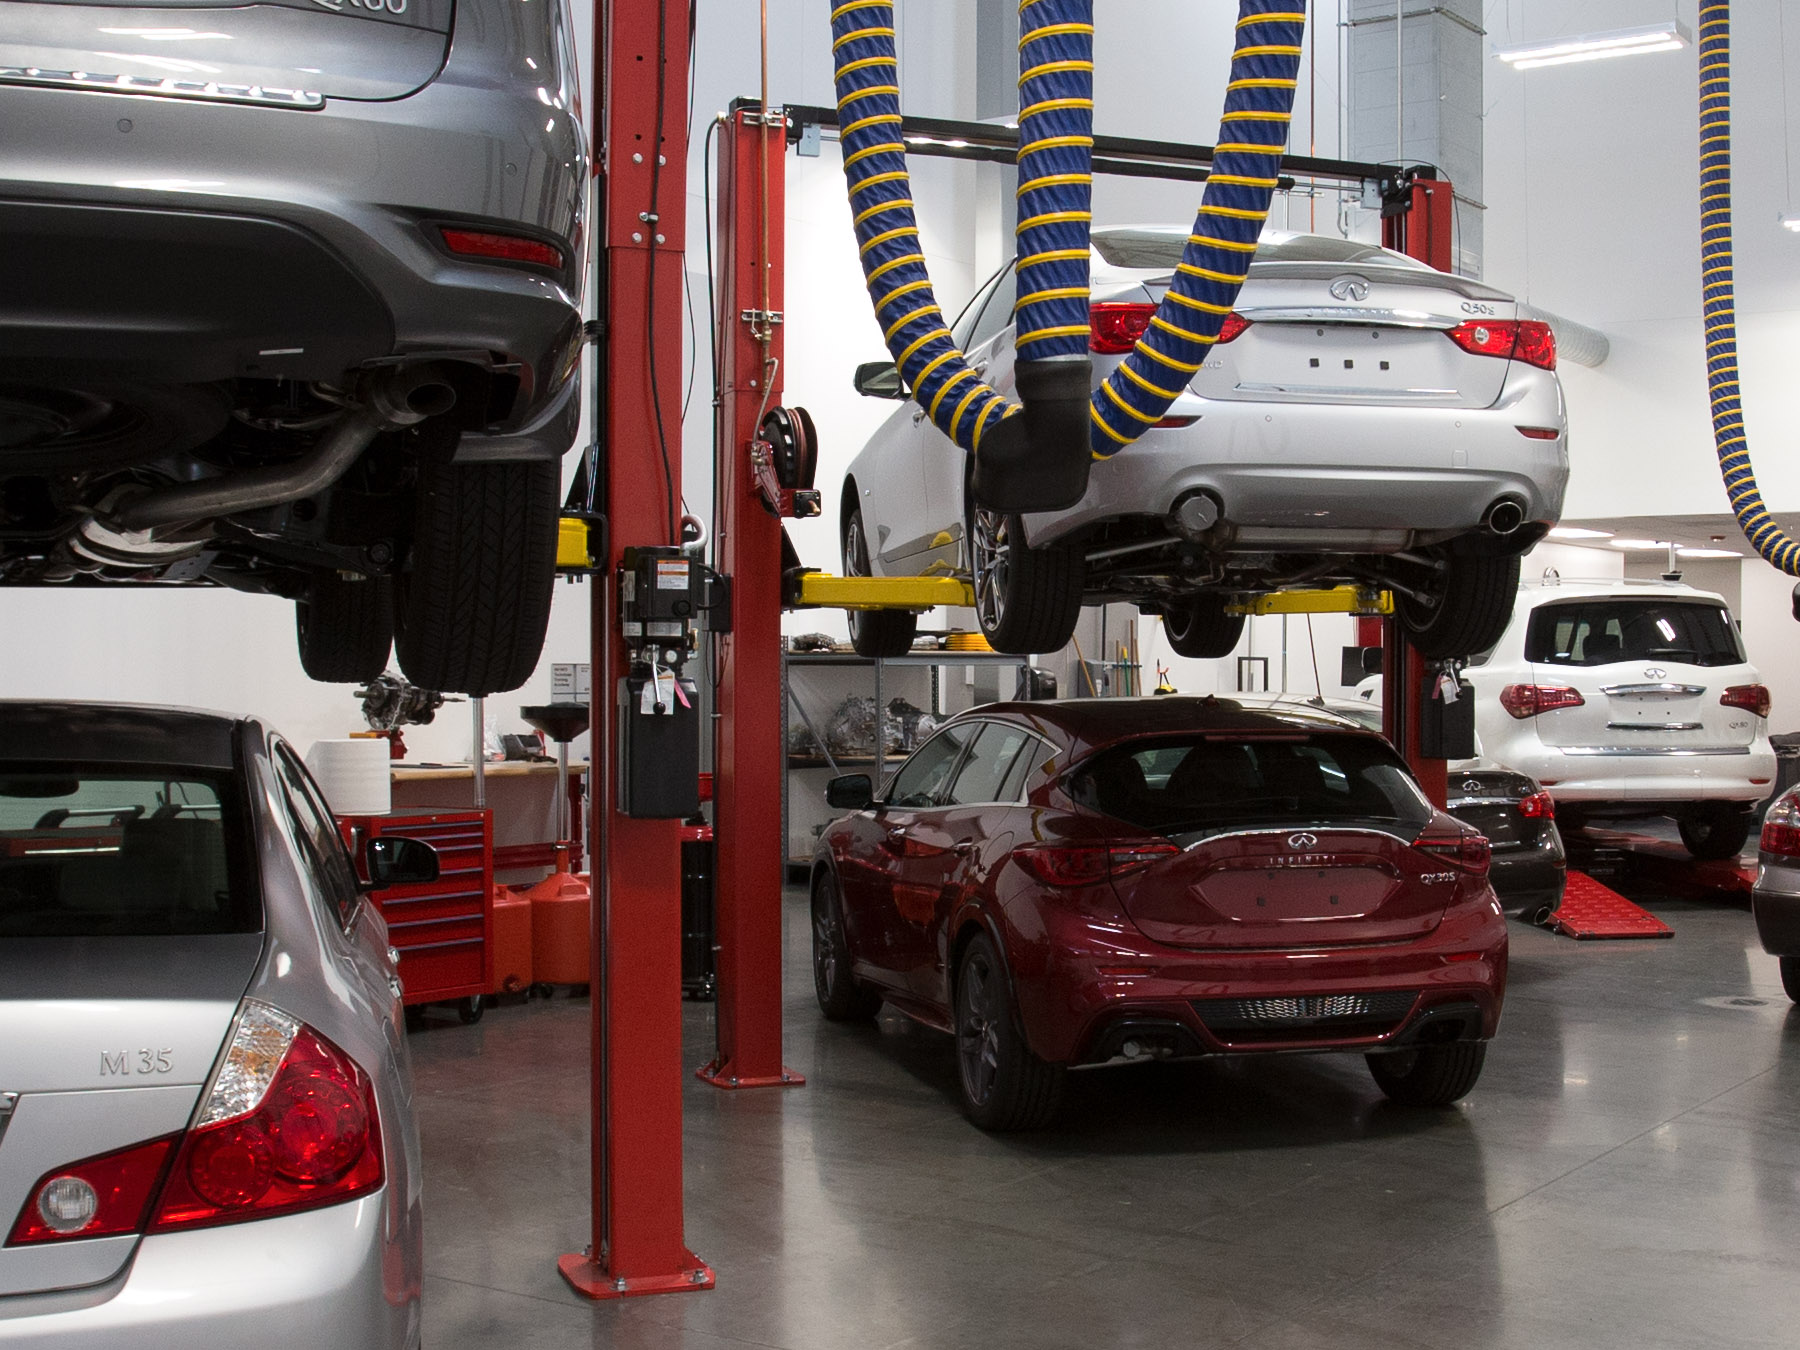 Infiniti Cars on lifts in the Infiniti auto lab